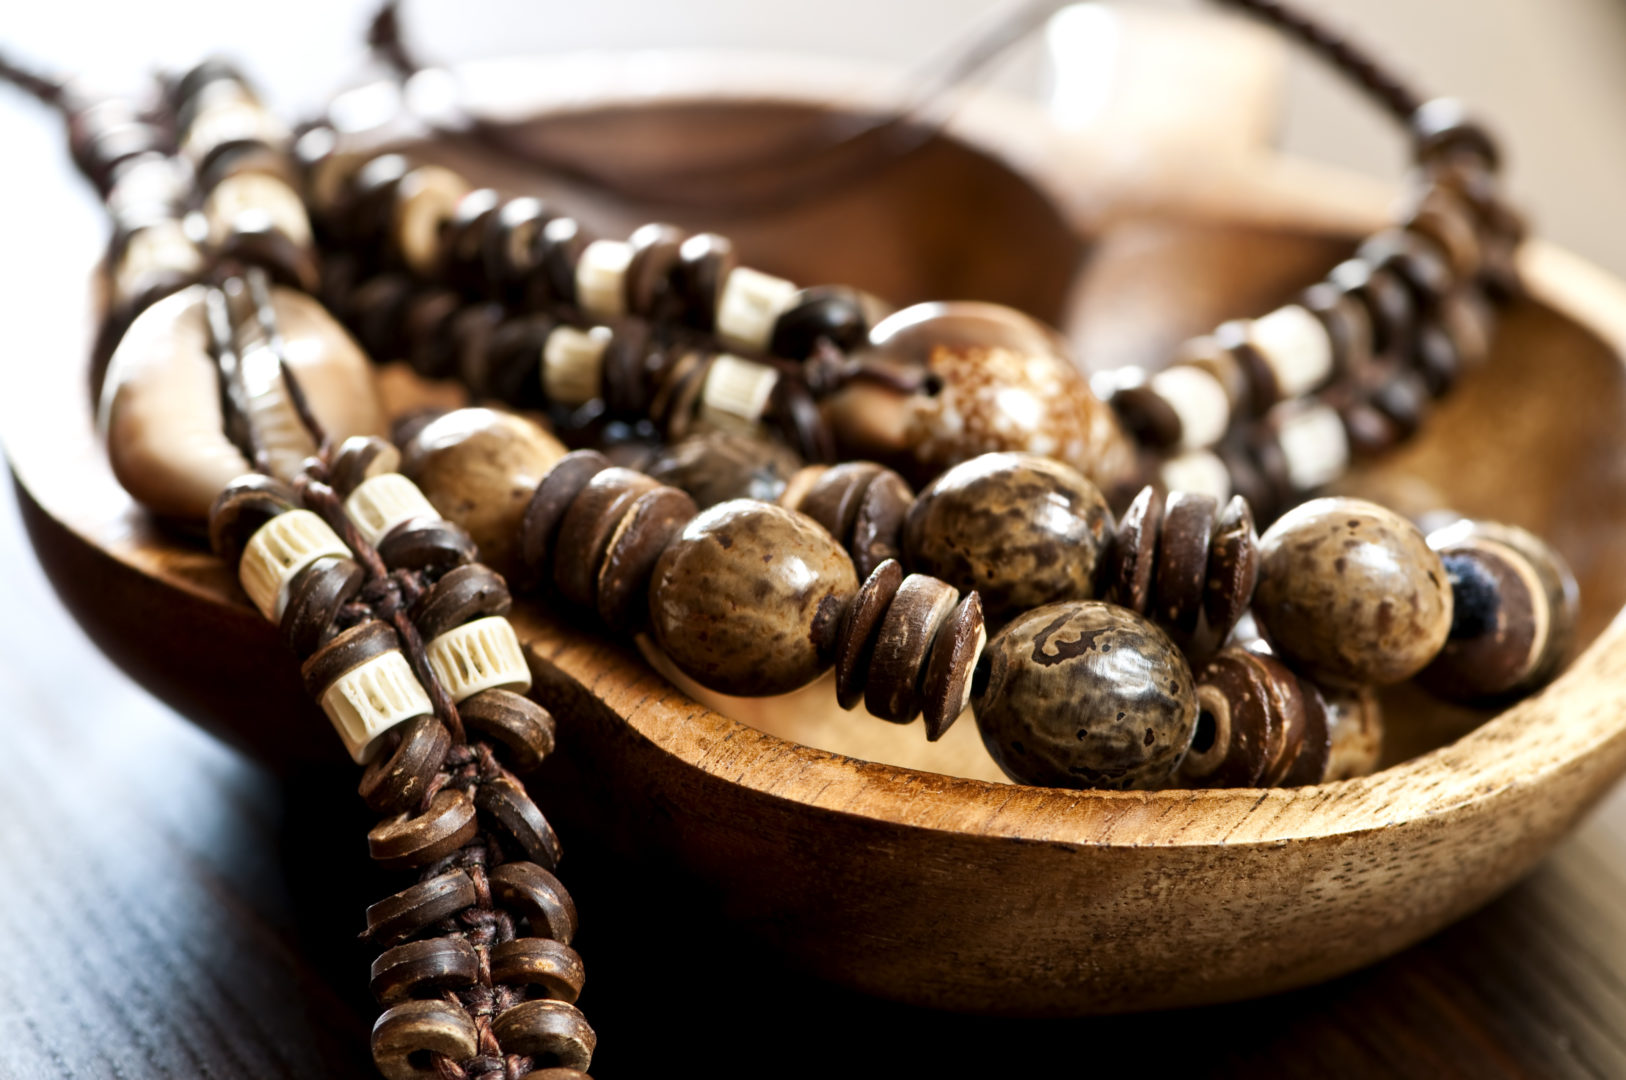 Close up of wooden jewlery in a wooden bowl